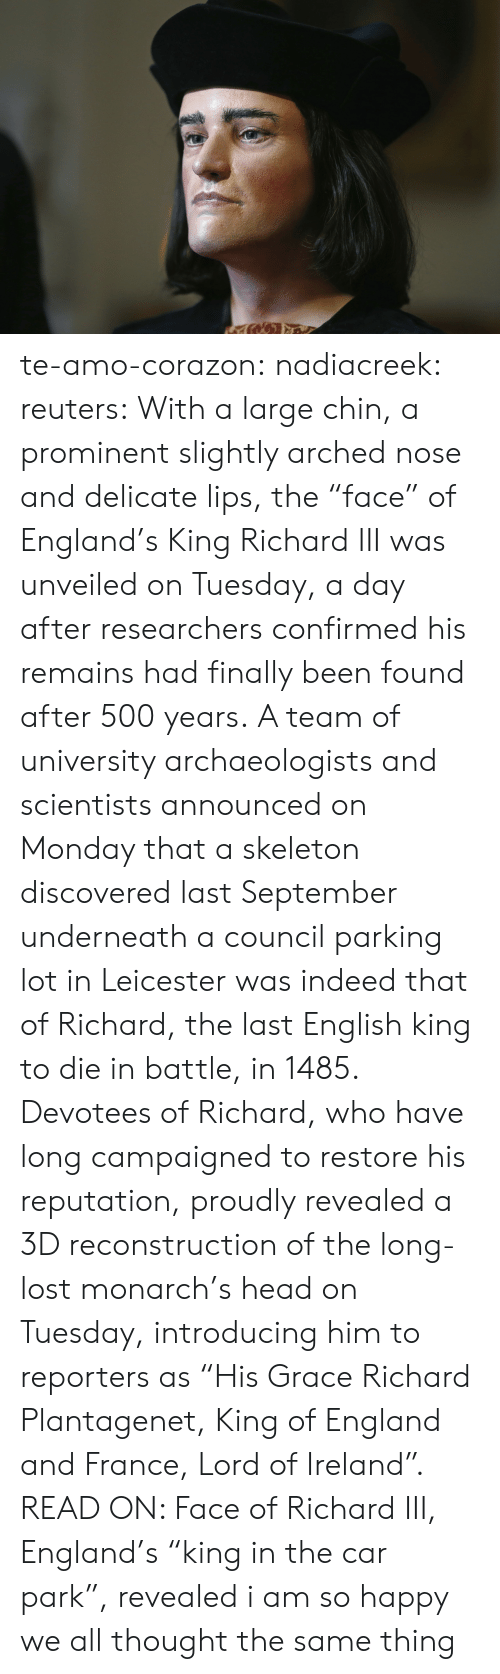 "reporters: te-amo-corazon: nadiacreek:  reuters:  With a large chin, a prominent slightly arched nose and delicate lips, the ""face"" of England's King Richard III was unveiled on Tuesday, a day after researchers confirmed his remains had finally been found after 500 years. A team of university archaeologists and scientists announced on Monday that a skeleton discovered last September underneath a council parking lot in Leicester was indeed that of Richard, the last English king to die in battle, in 1485. Devotees of Richard, who have long campaigned to restore his reputation, proudly revealed a 3D reconstruction of the long-lost monarch's head on Tuesday, introducing him to reporters as ""His Grace Richard Plantagenet, King of England and France, Lord of Ireland"". READ ON: Face of Richard III, England's ""king in the car park"", revealed     i am so happy we all thought the same thing"